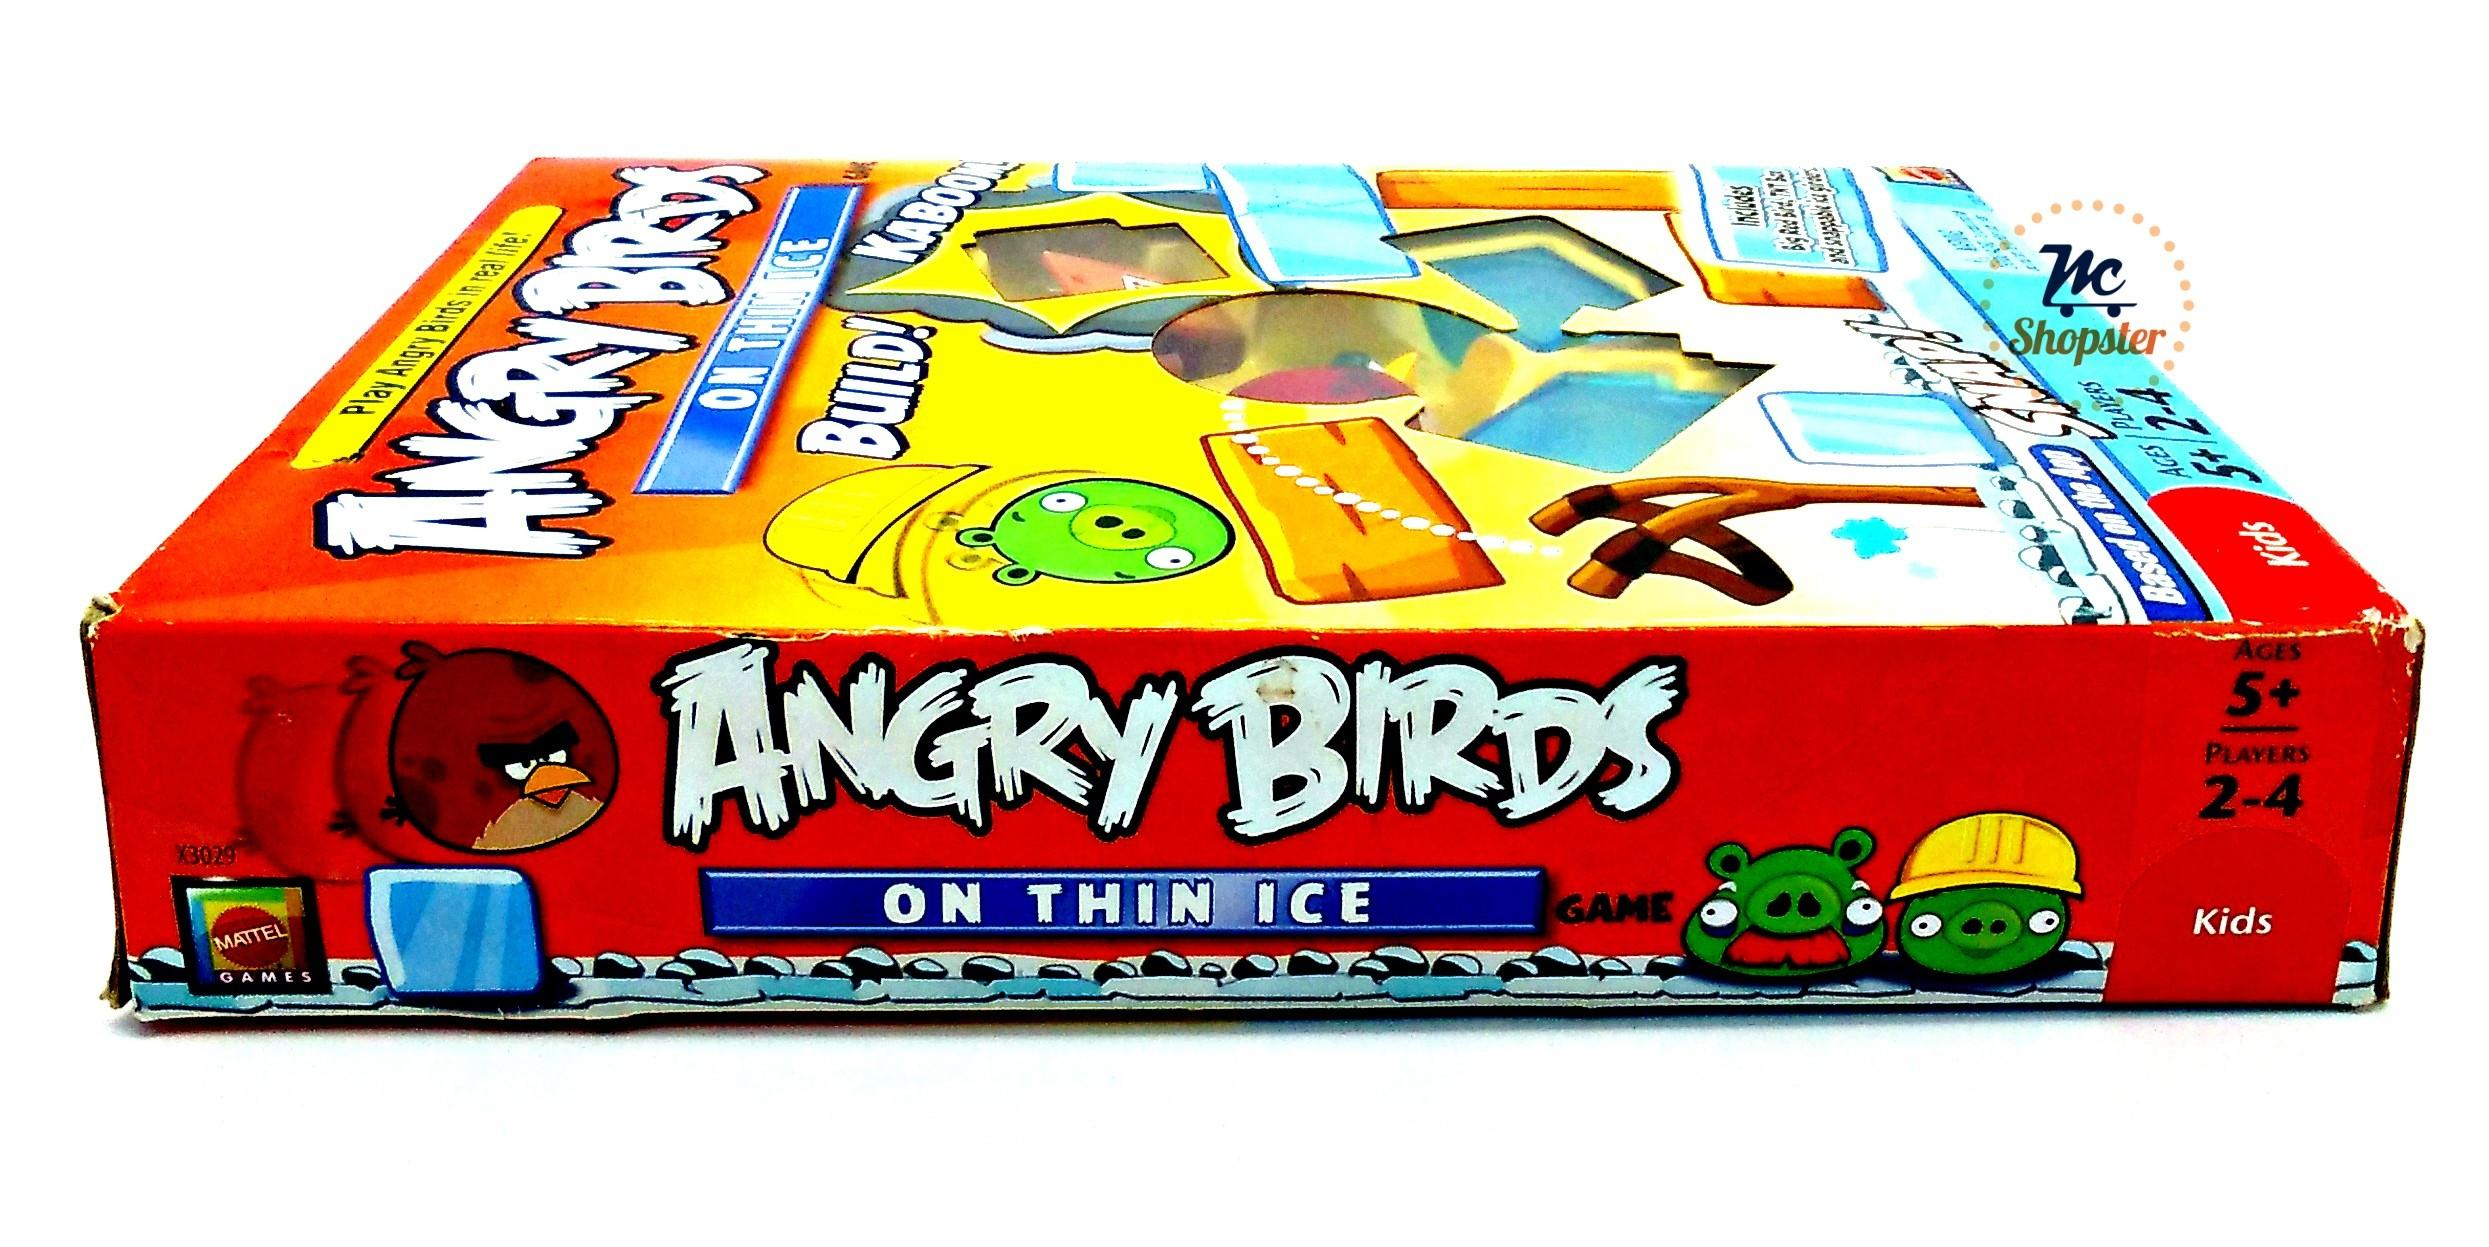 Angry Birds Thin Ice Mattel Popular Phone App Board